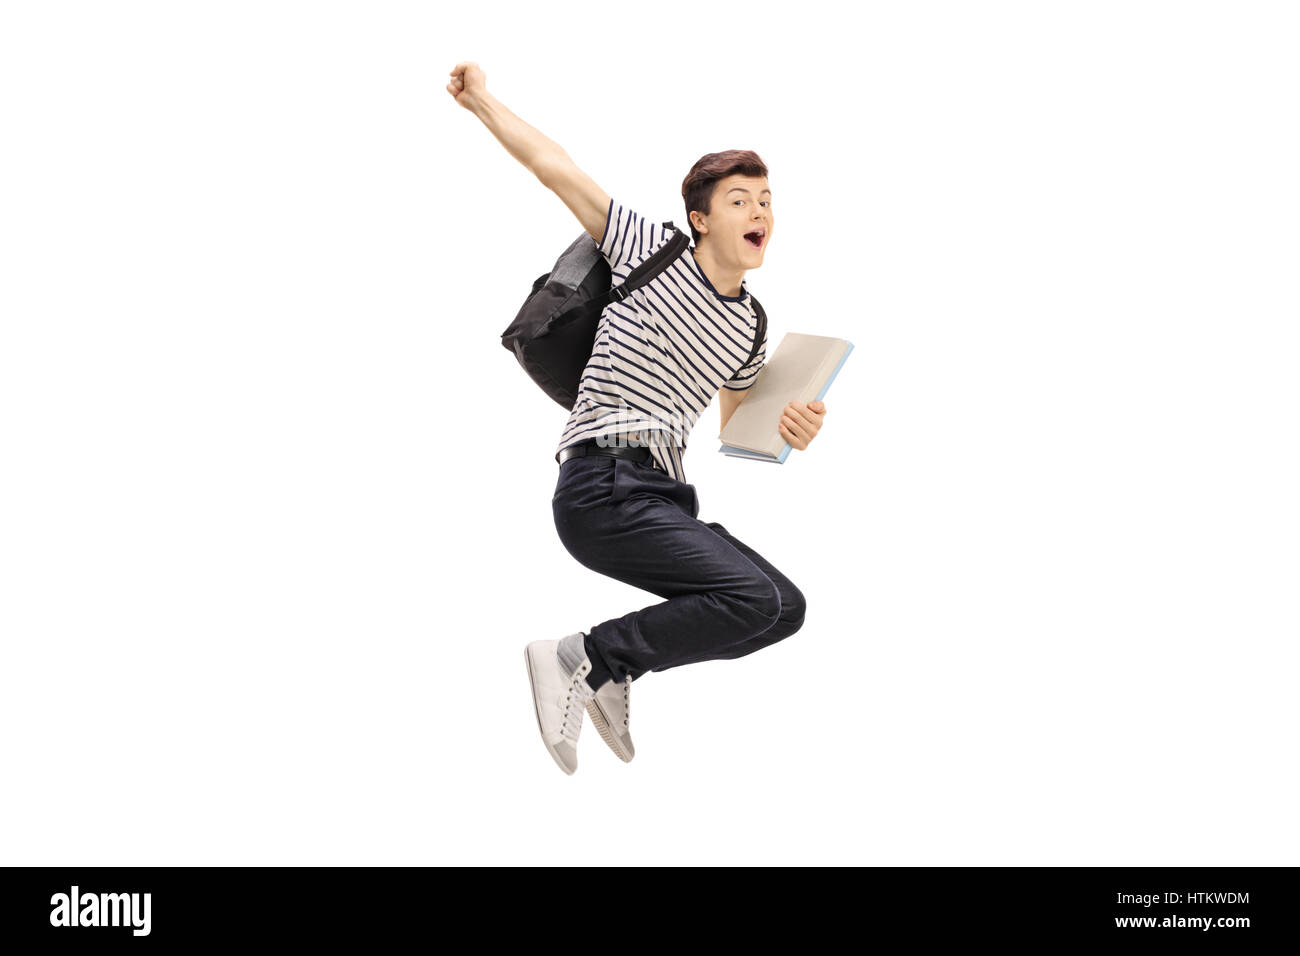 Overjoyed teenage student jumping and gesturing happiness isolated on white background - Stock Image